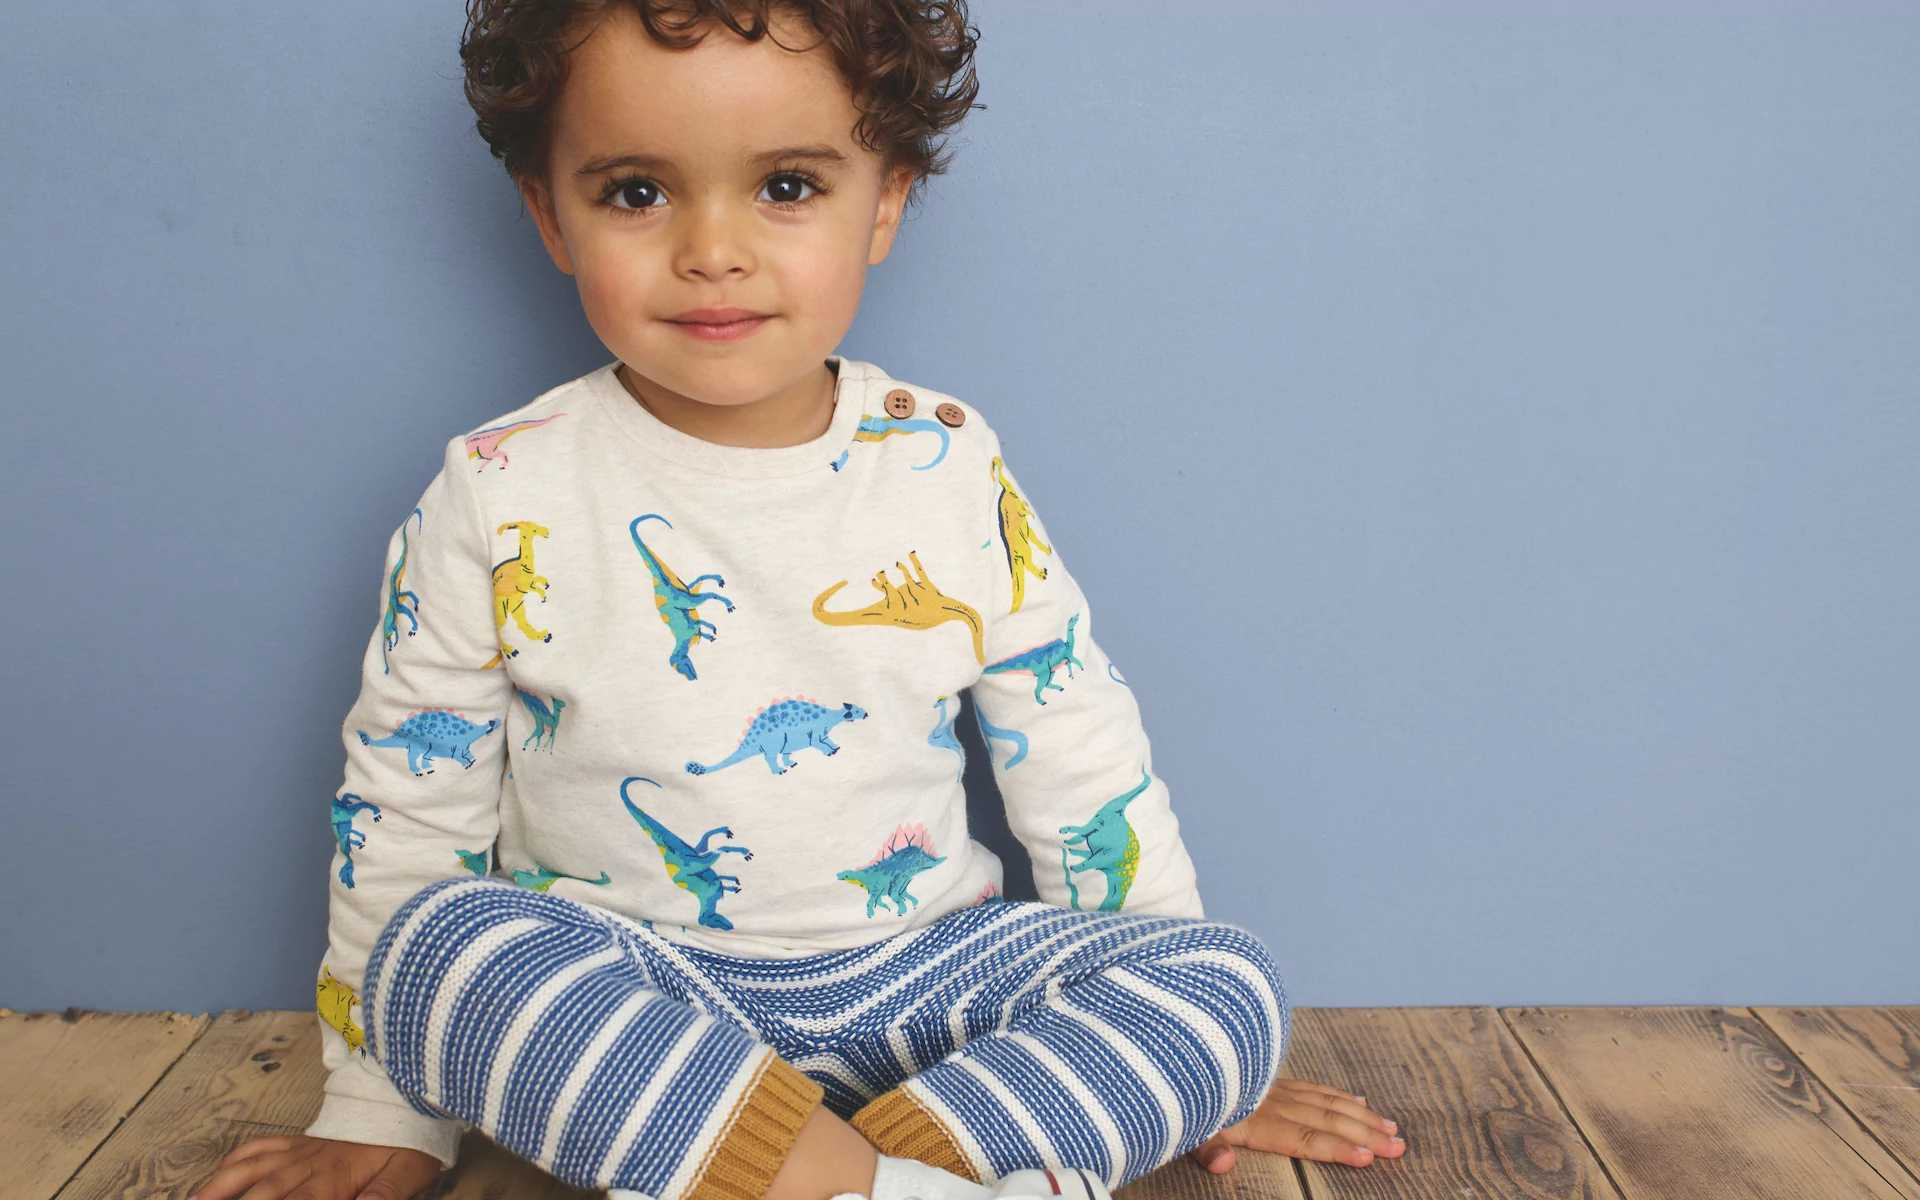 John Lewis Attempts To Fight 'Gender Stereotypes' With New Childrenswear